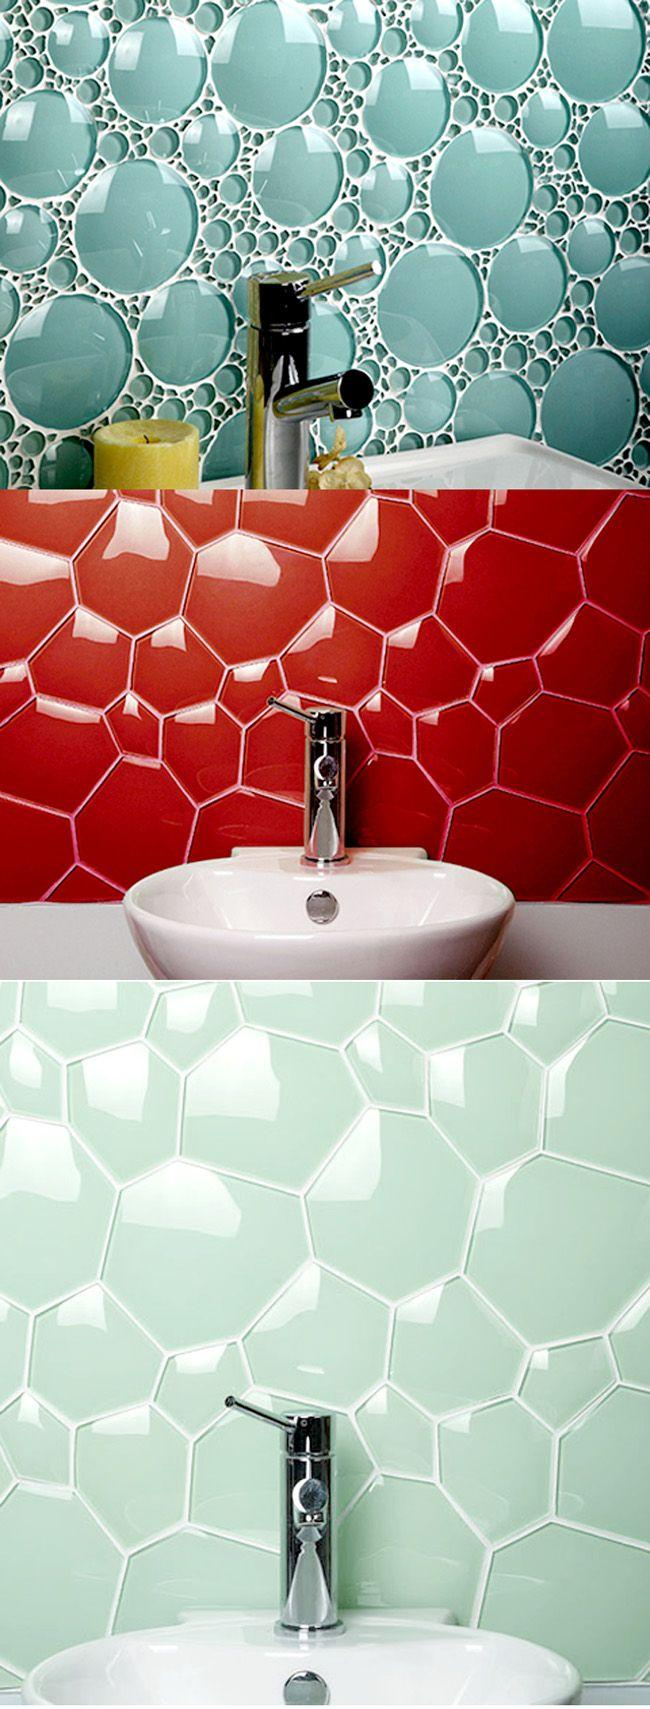 Colorful mosaic designs - above the bathroom sink